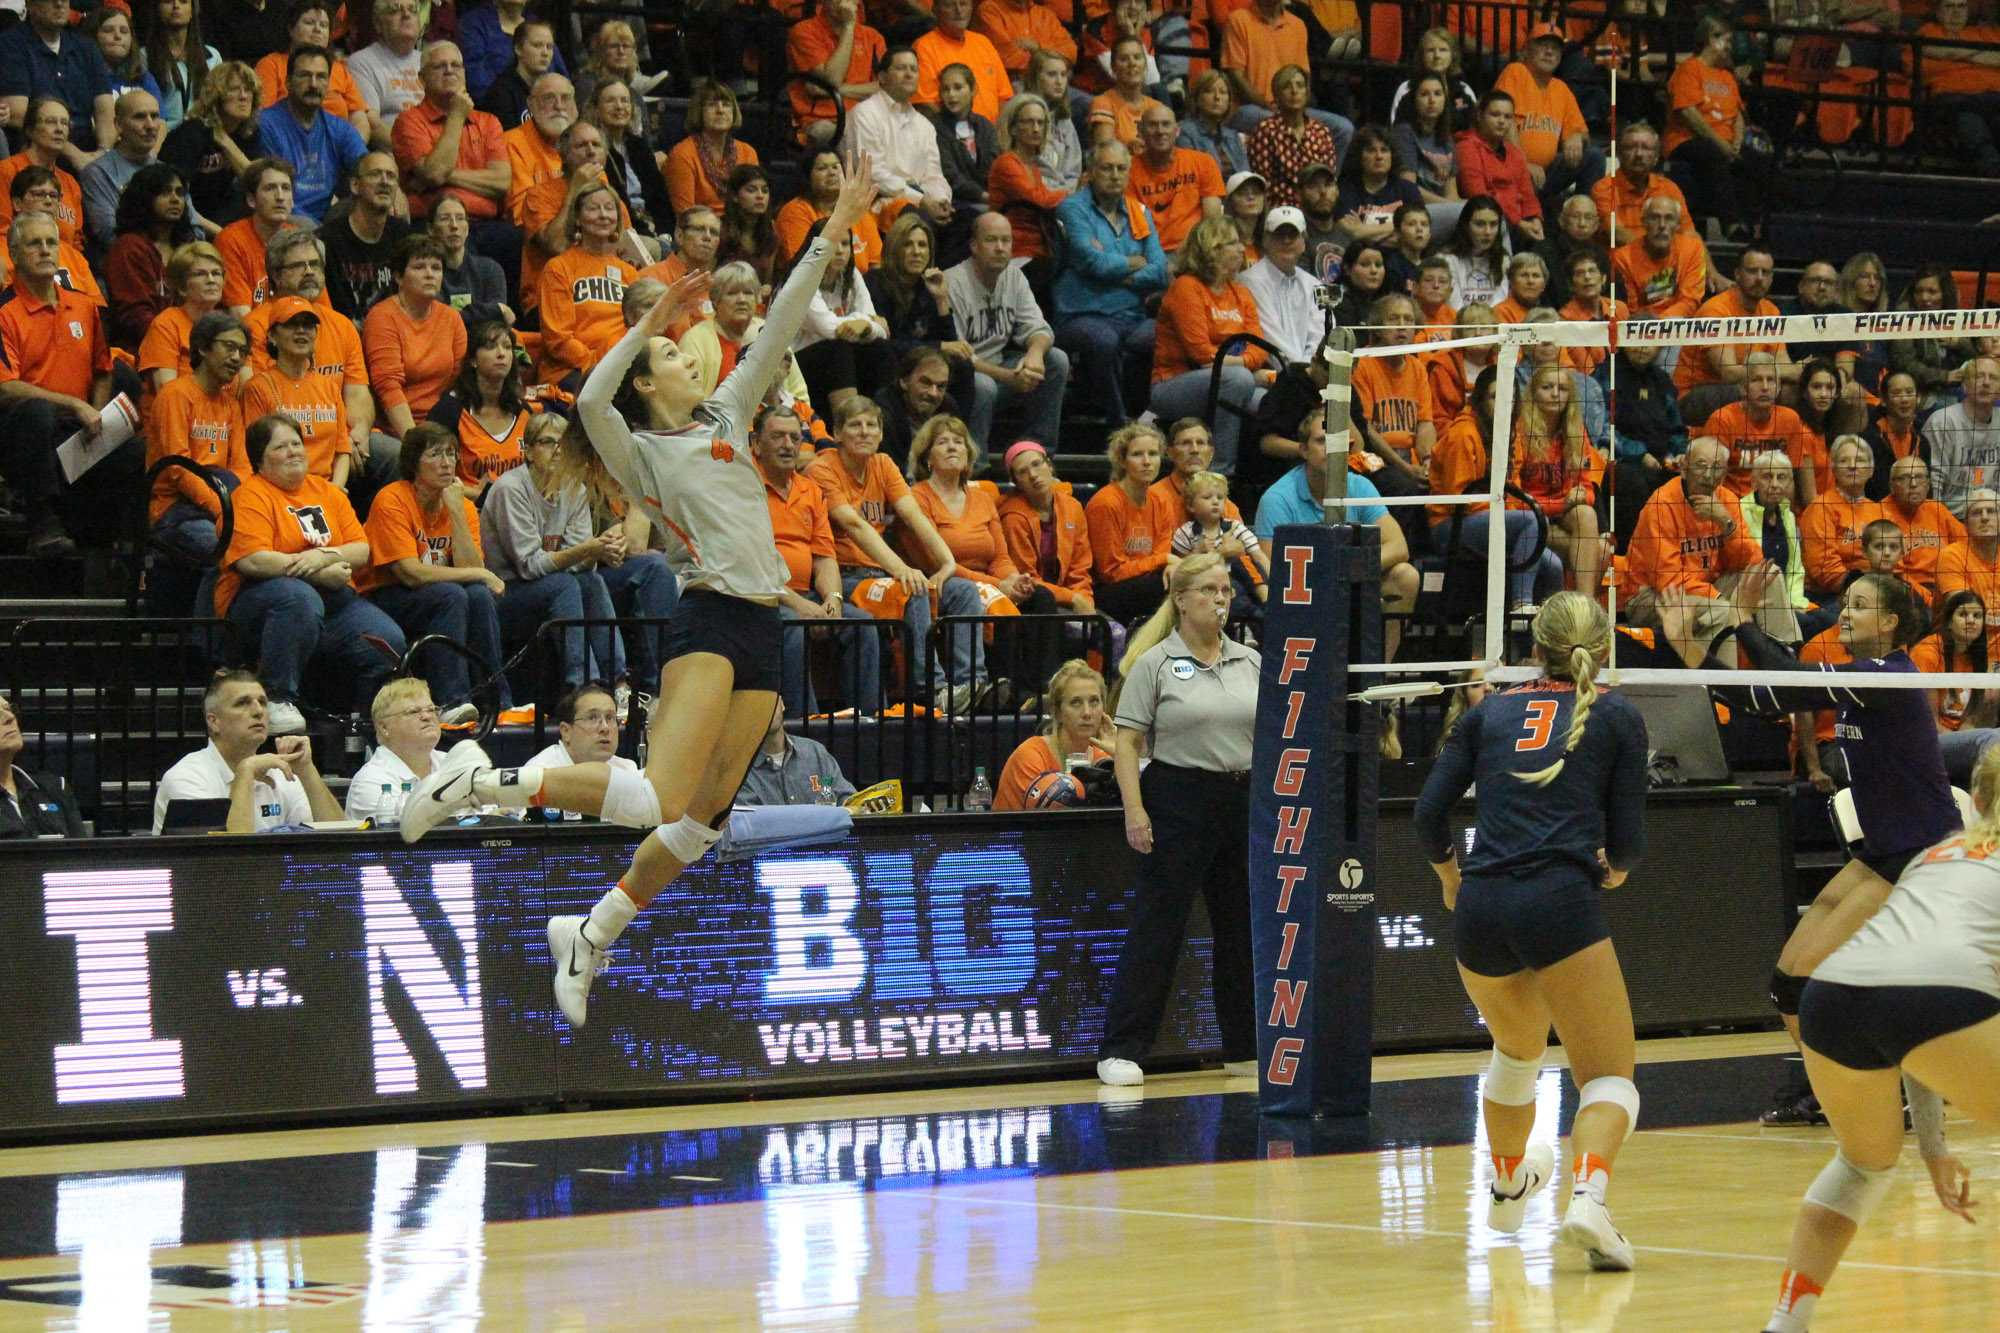 Michelle Strizak (4) jumps up to serve the ball to Northwestern's territory at Huff Hall on Oct. 15, 2016. Illini beat Northwestern 3-0.